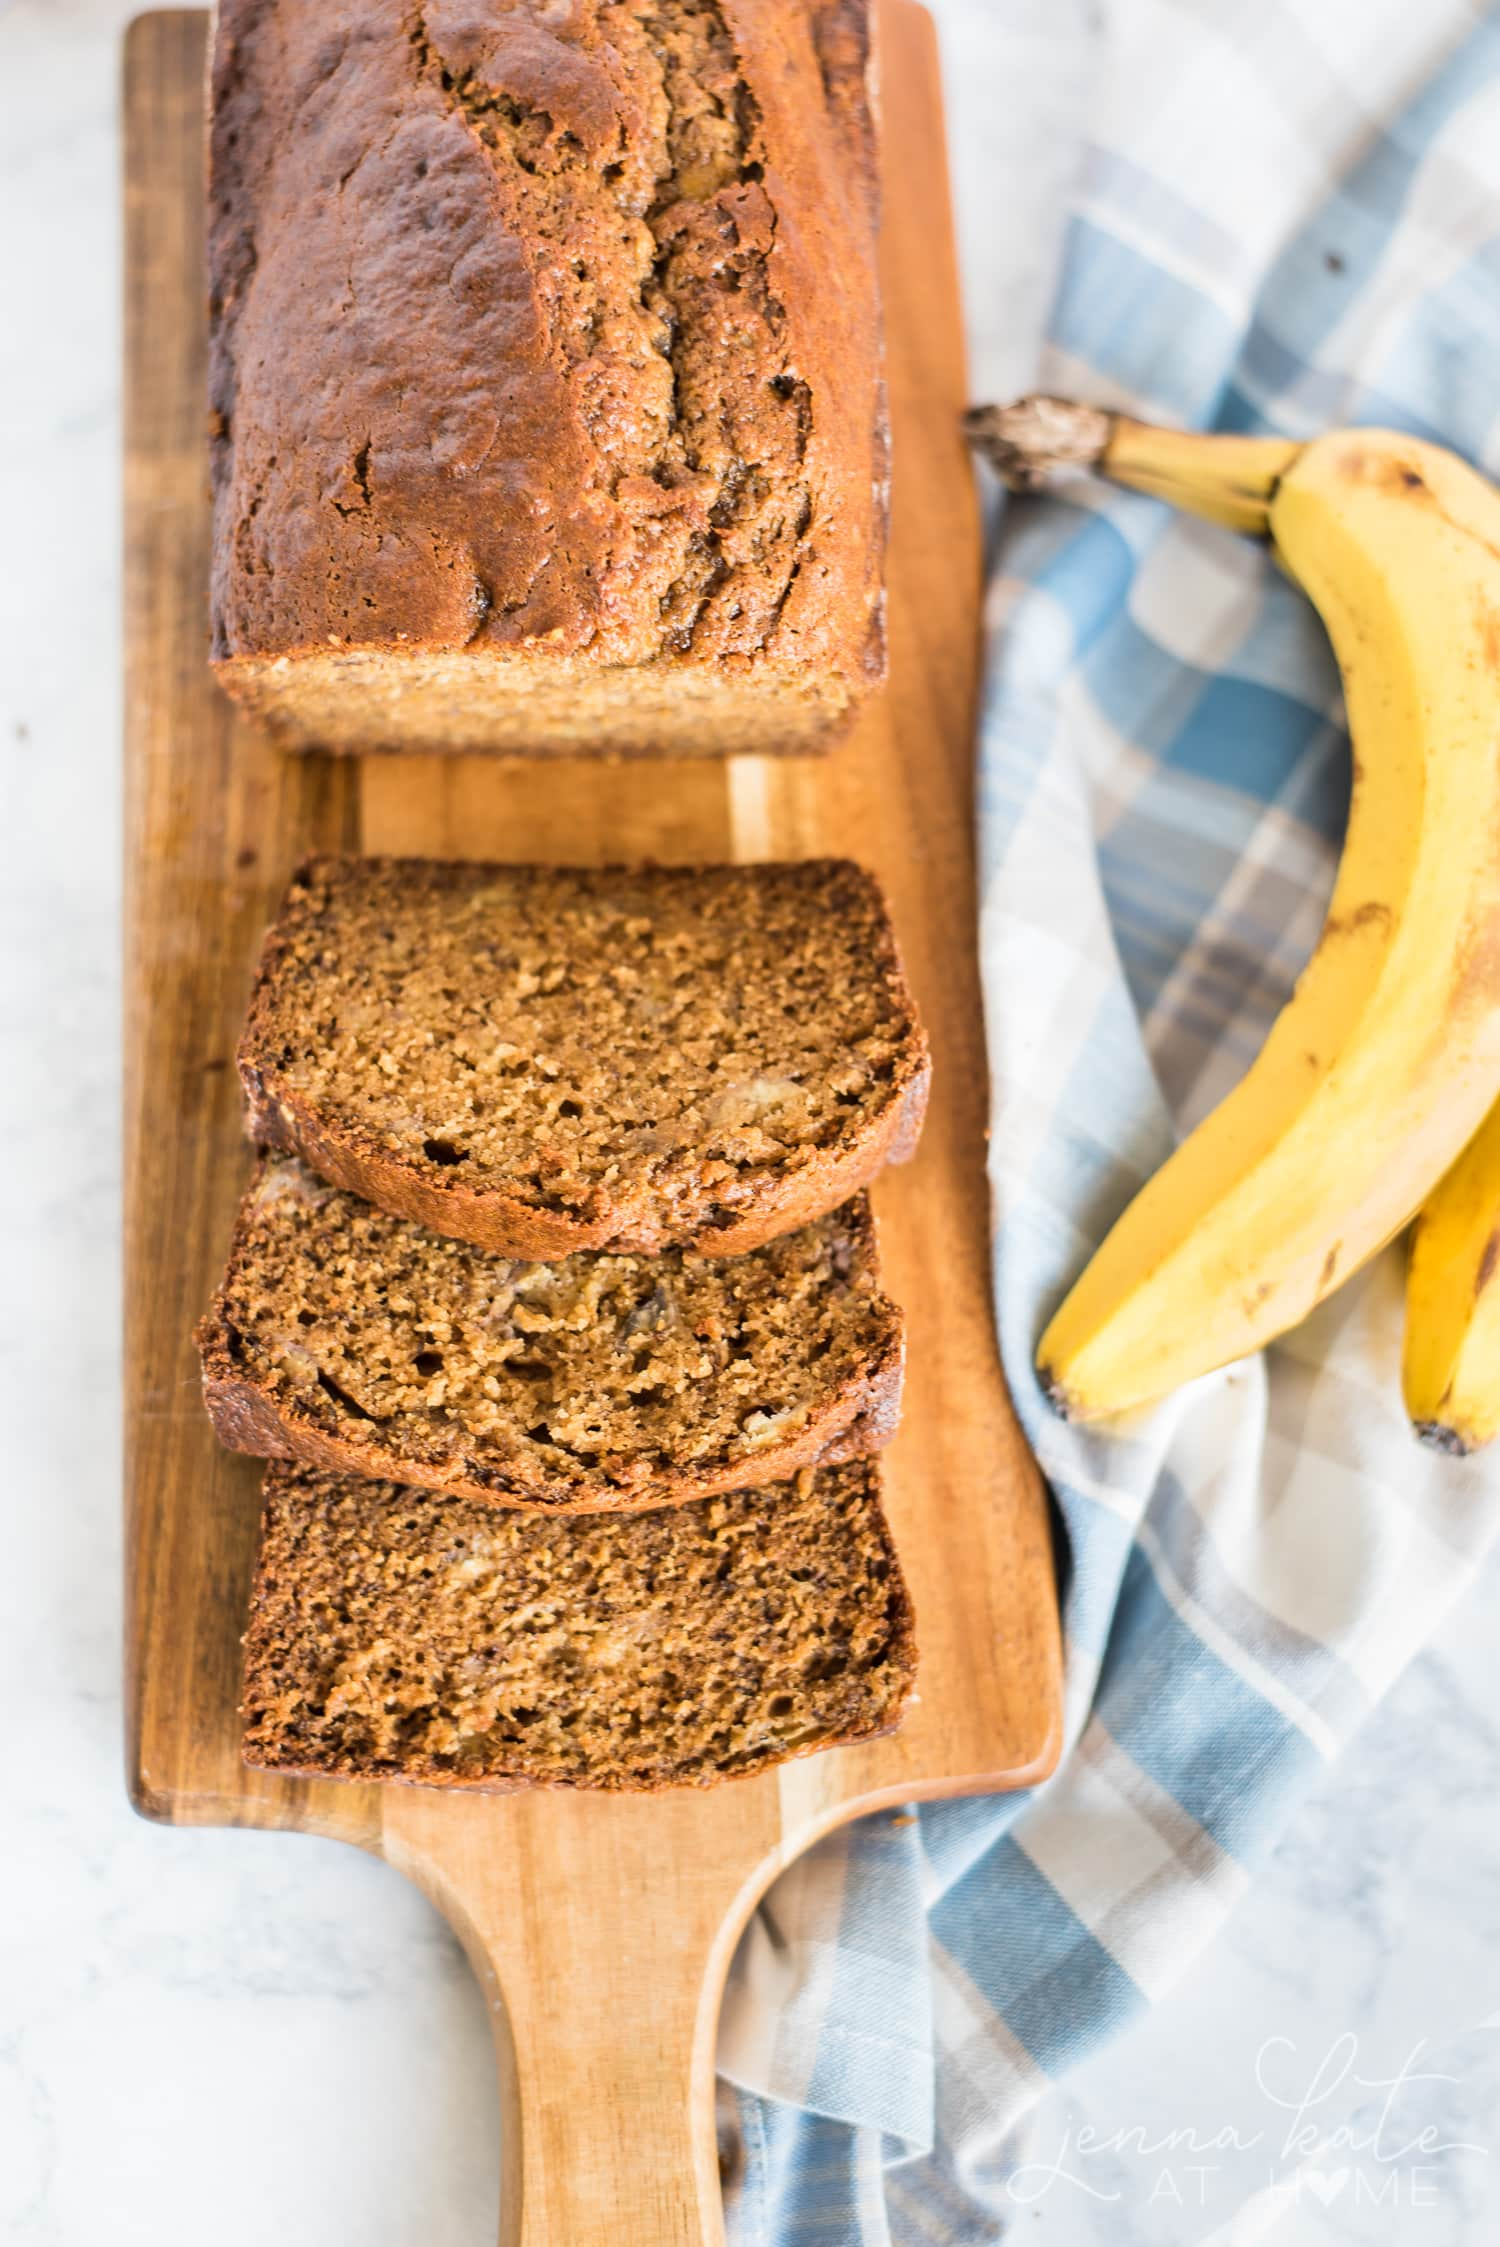 The world's best banana bread made with sour cream or creme fraiche